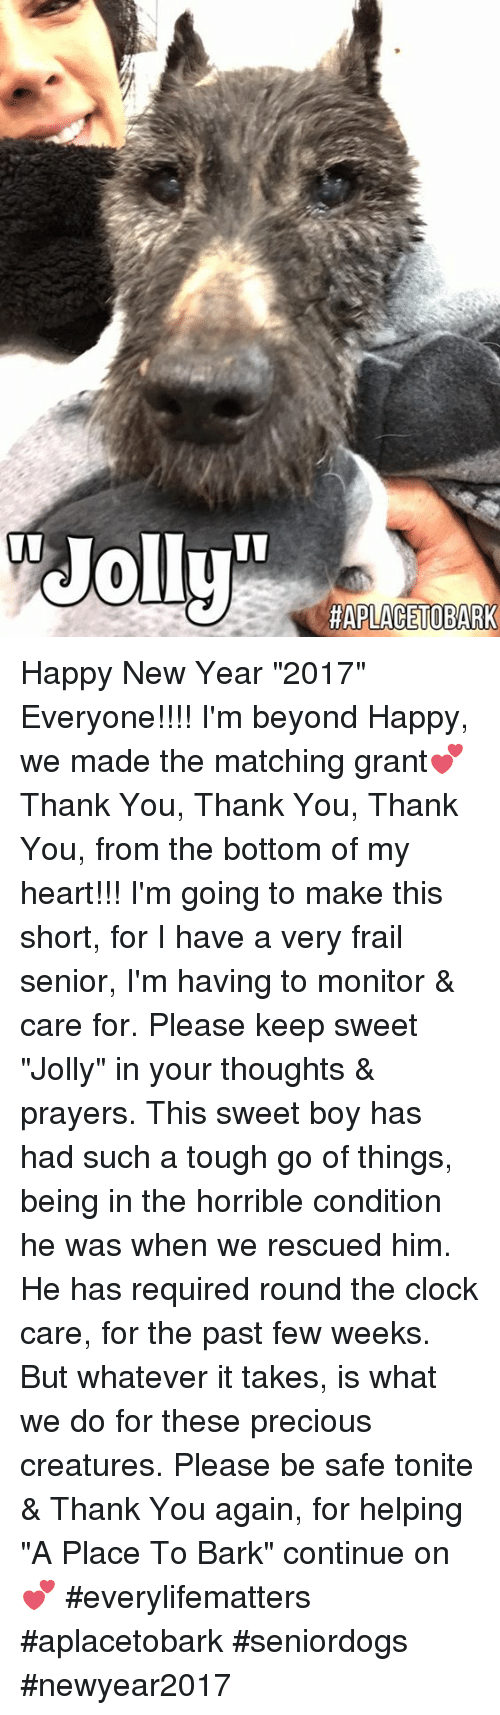 """Clock, Memes, and 2017: HAPLACETOBARK Happy New Year """"2017"""" Everyone!!!! I'm beyond Happy, we made the matching grant💕 Thank You, Thank You, Thank You, from the bottom of my heart!!! I'm going to make this short, for I have a very frail senior, I'm having to monitor & care for.  Please keep sweet """"Jolly"""" in your thoughts & prayers.  This sweet boy has had such a tough go of things, being in the horrible condition he was when we rescued him.  He has required round the clock care, for the past few weeks.  But whatever it takes, is what we do for these precious creatures. Please be safe tonite & Thank You again, for helping """"A Place To Bark"""" continue on💕  #everylifematters #aplacetobark #seniordogs #newyear2017"""